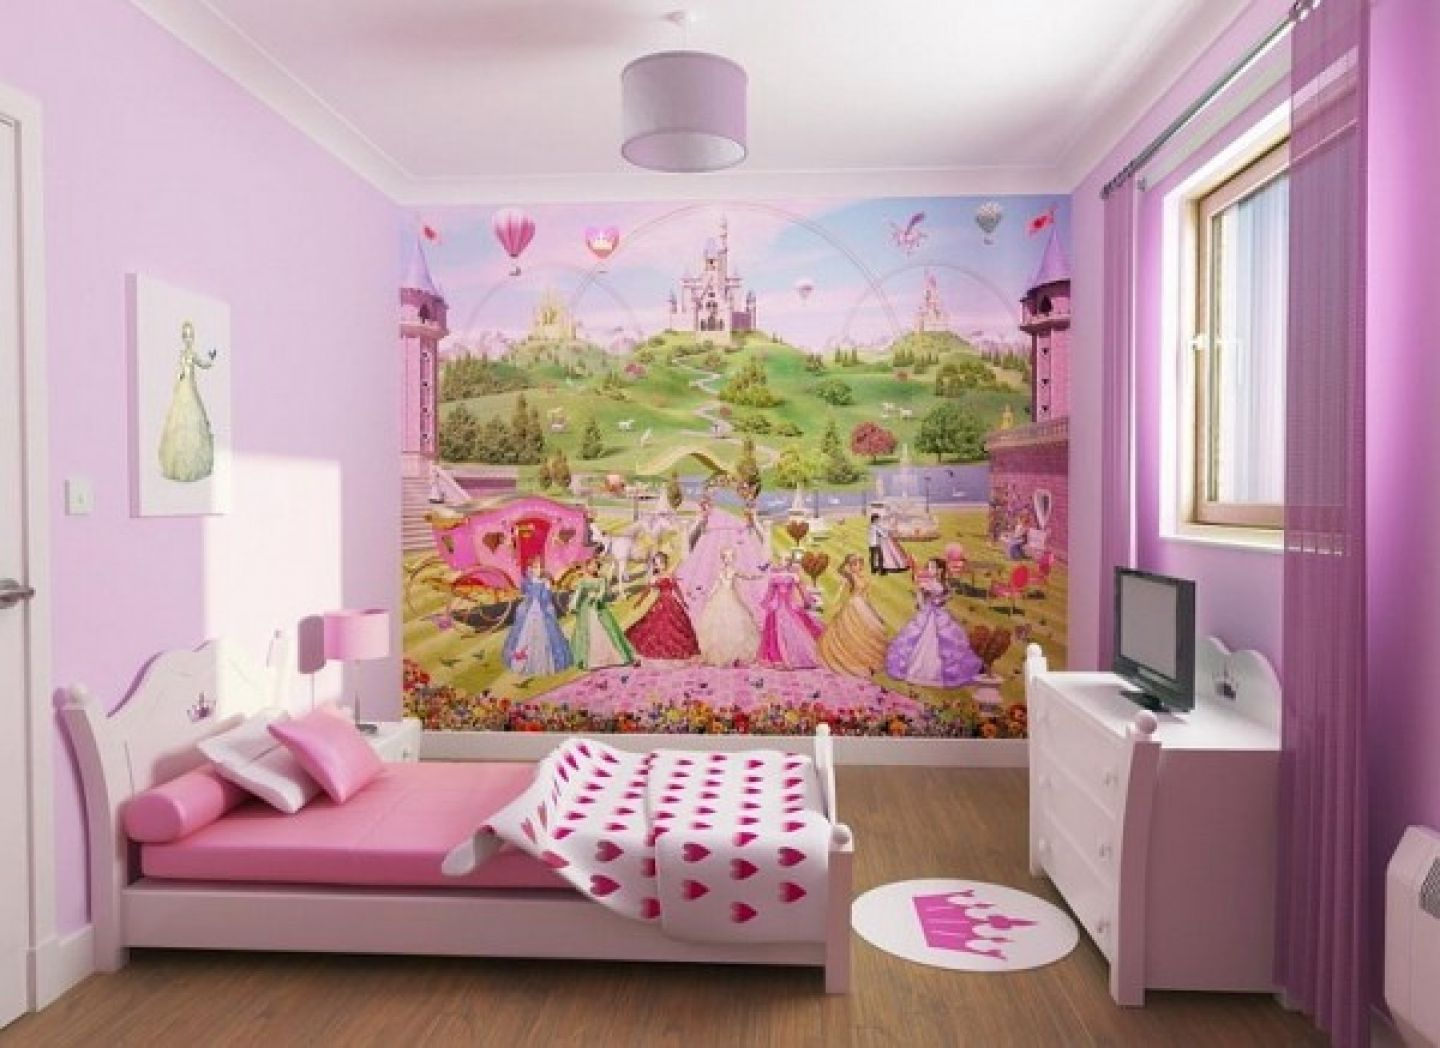 Girls Bedroom Decorating Ideas Beauteous Girls' Bedroom Style  Bedrooms Small Bedroom Decorating And Room Decorating Inspiration